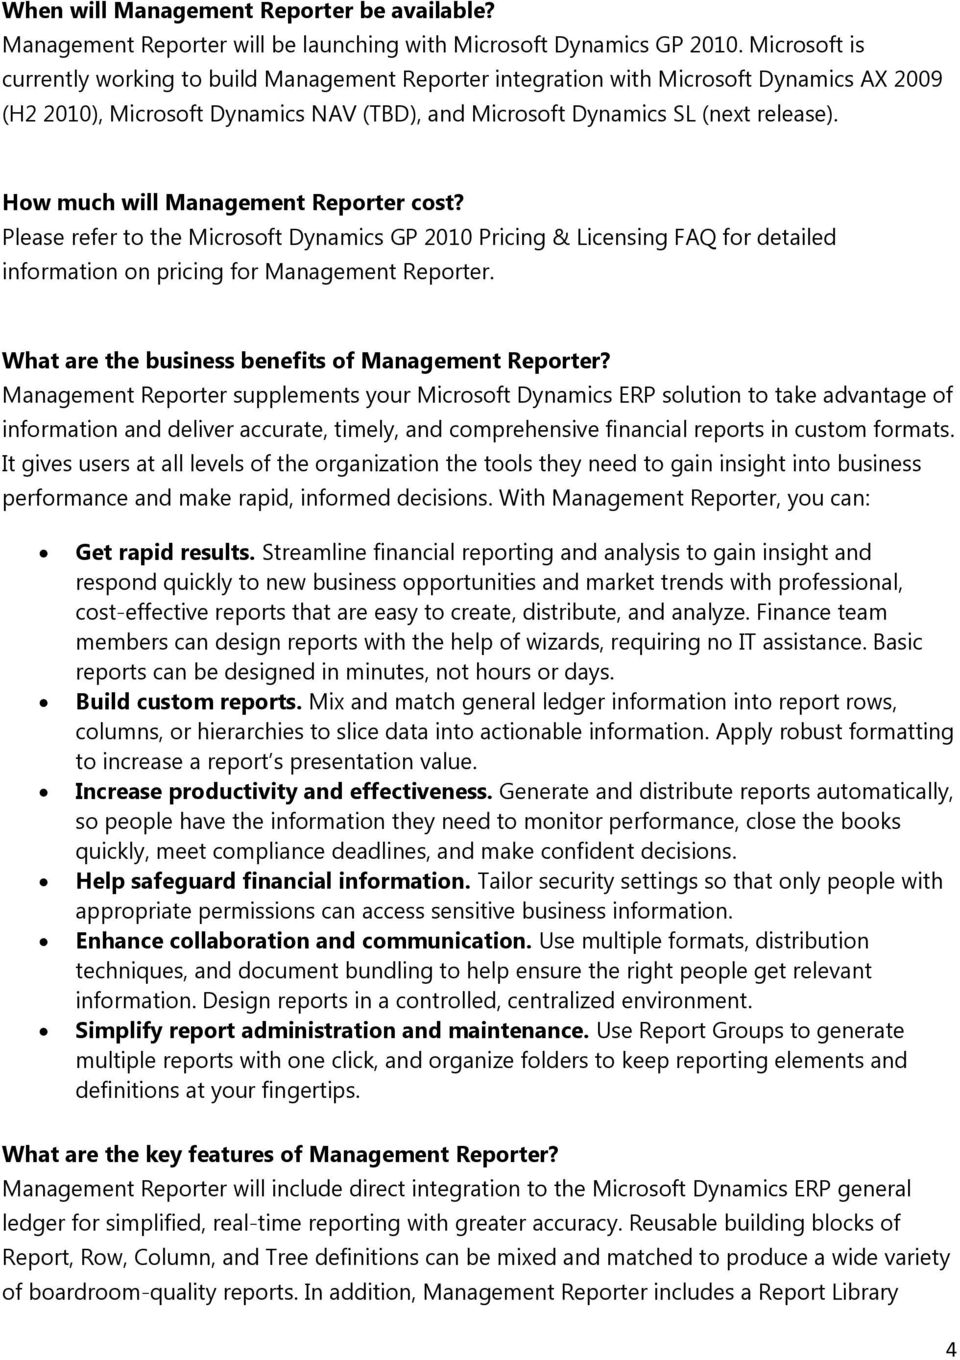 How much will Management Reporter cost? Please refer to the Microsoft Dynamics GP 2010 Pricing & Licensing FAQ for detailed information on pricing for Management Reporter.